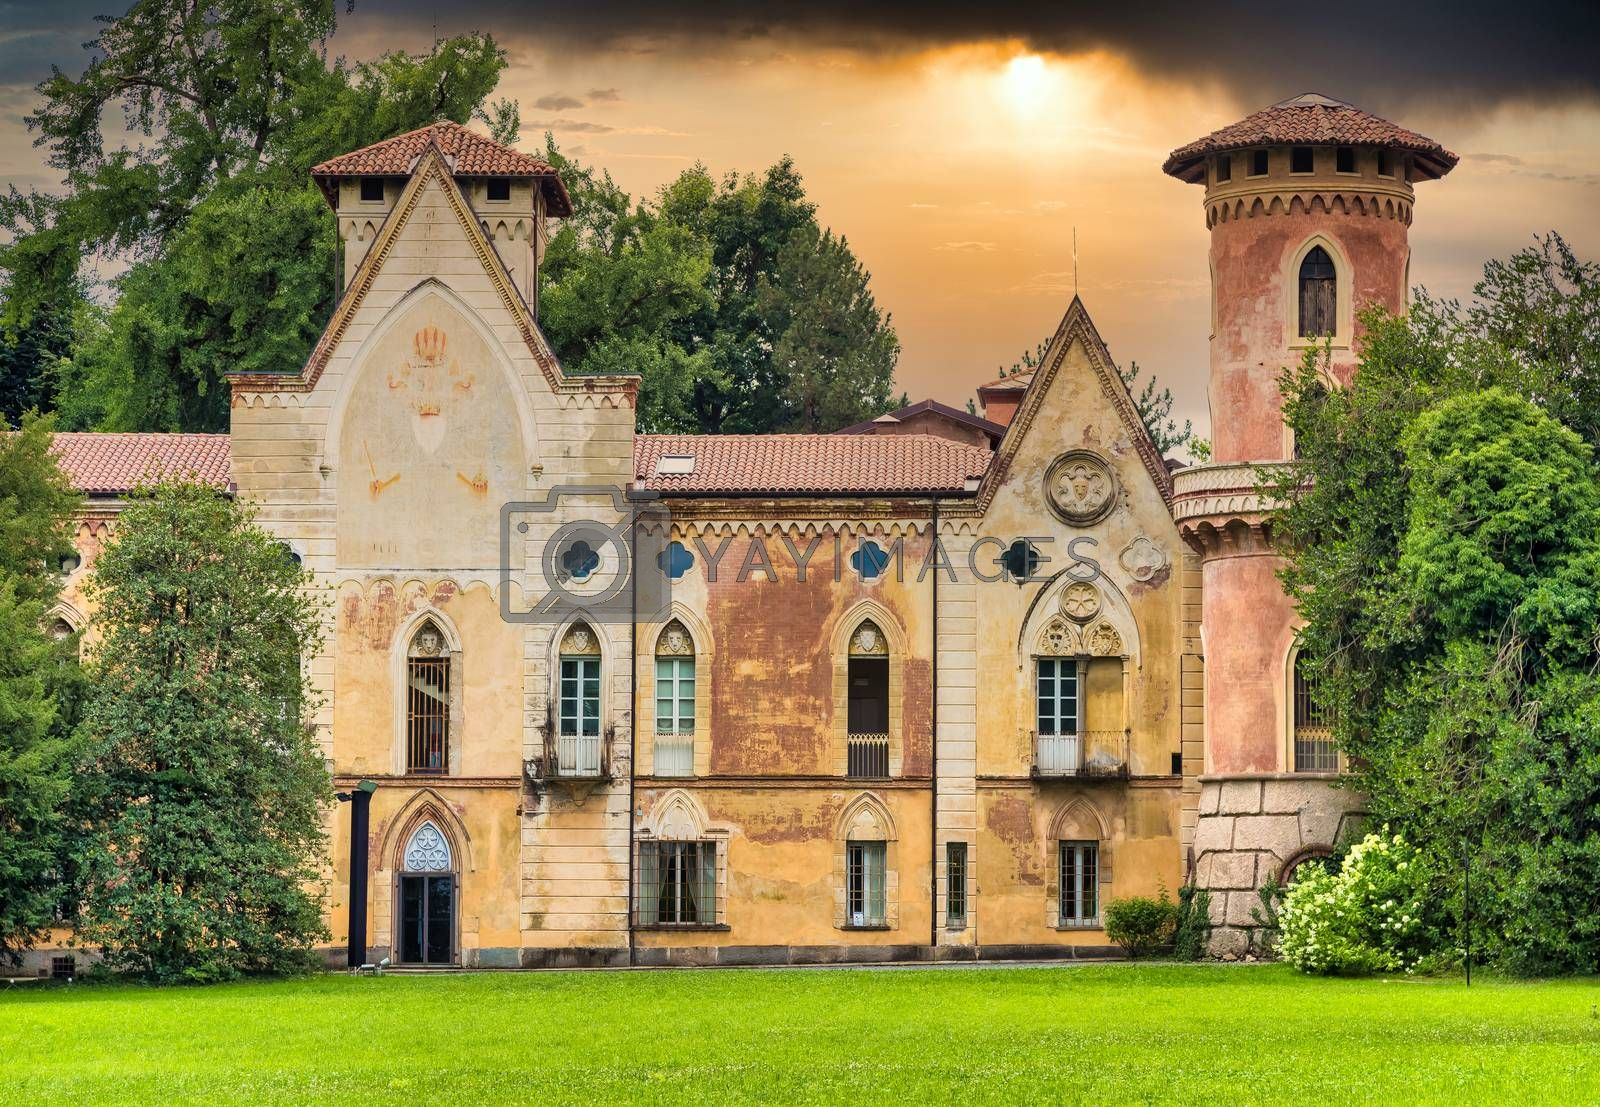 ITALY, MIRADOLO - CIRCA AUGUST 2020: gothic design castle located in an Italian garden, full of mystery, with sunset light.